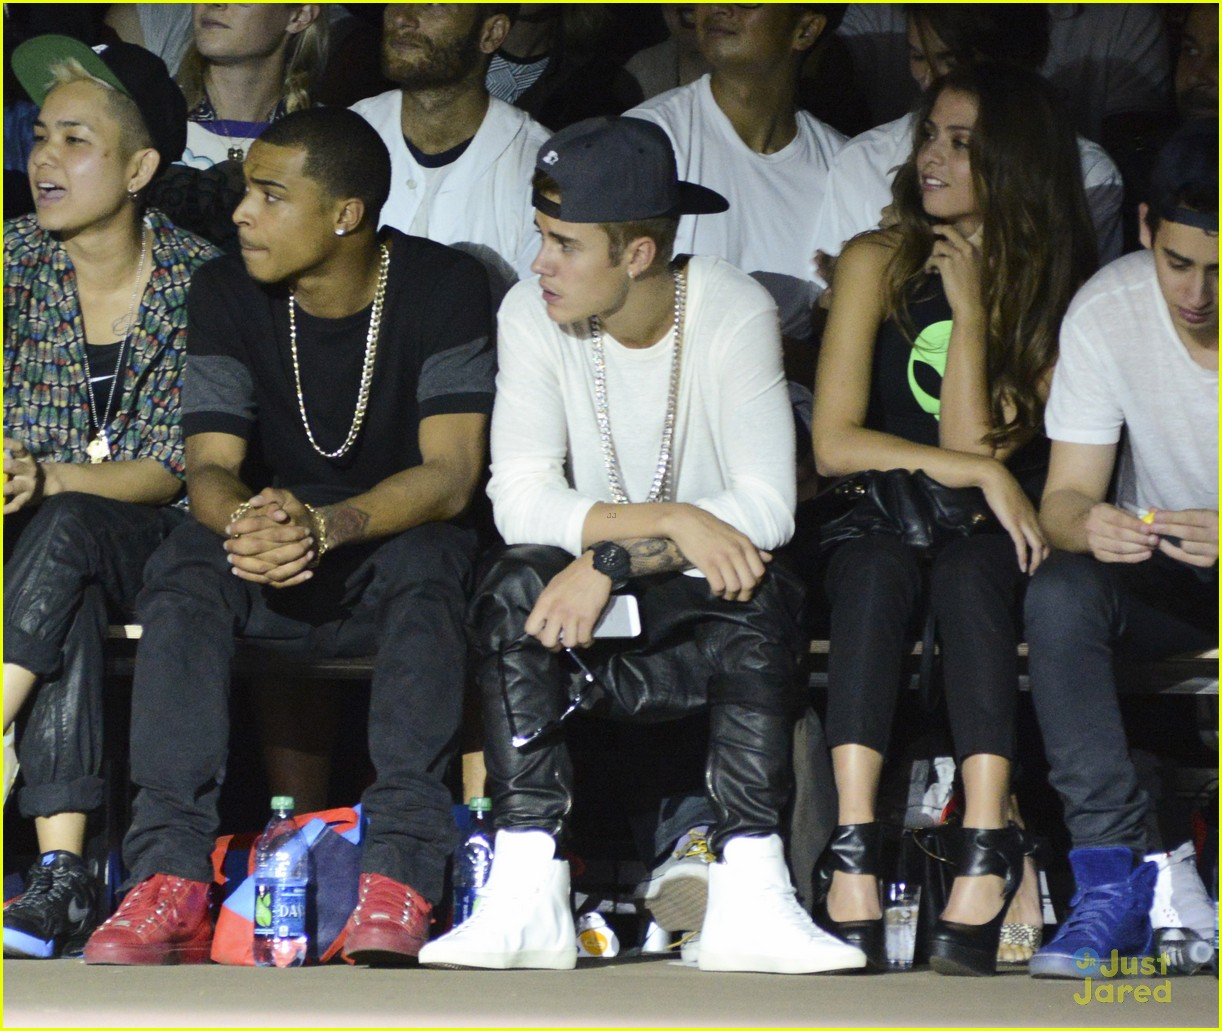 Justin Bieber Fashion Style 2013 Images Galleries With A Bite